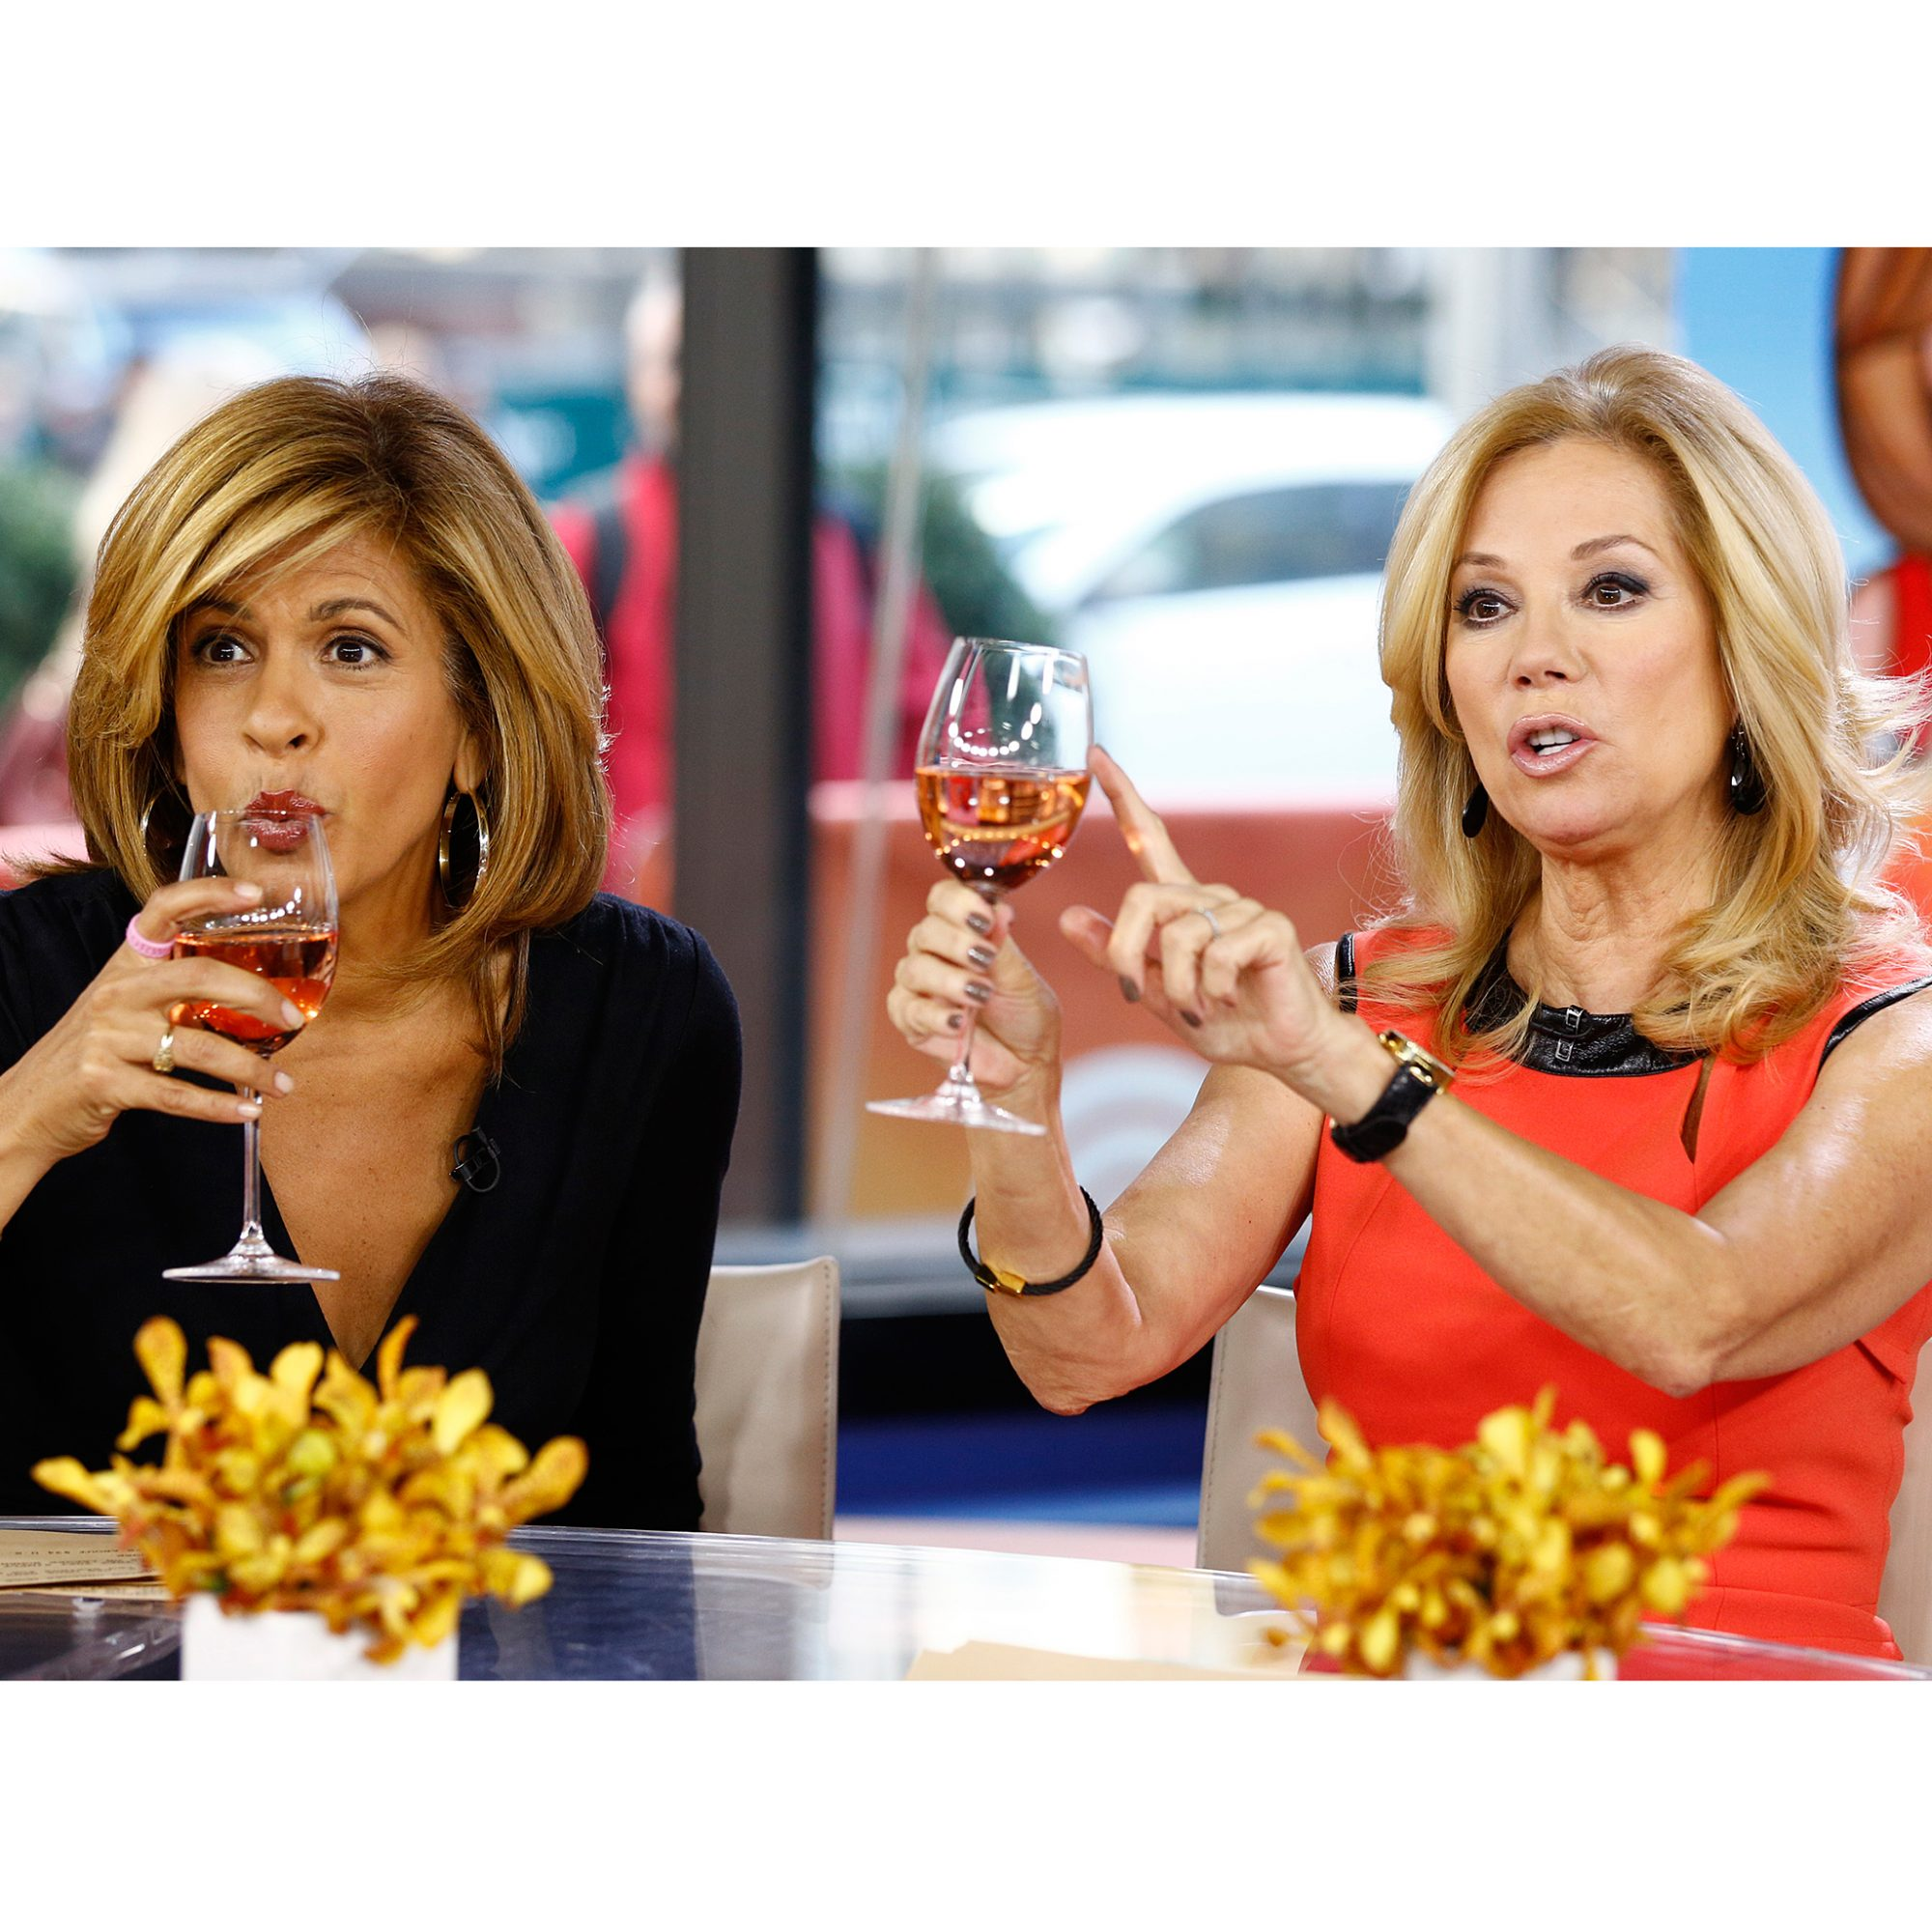 WINE MAY HAVE MORE ALCOHOL THAN YOU THINK FWX